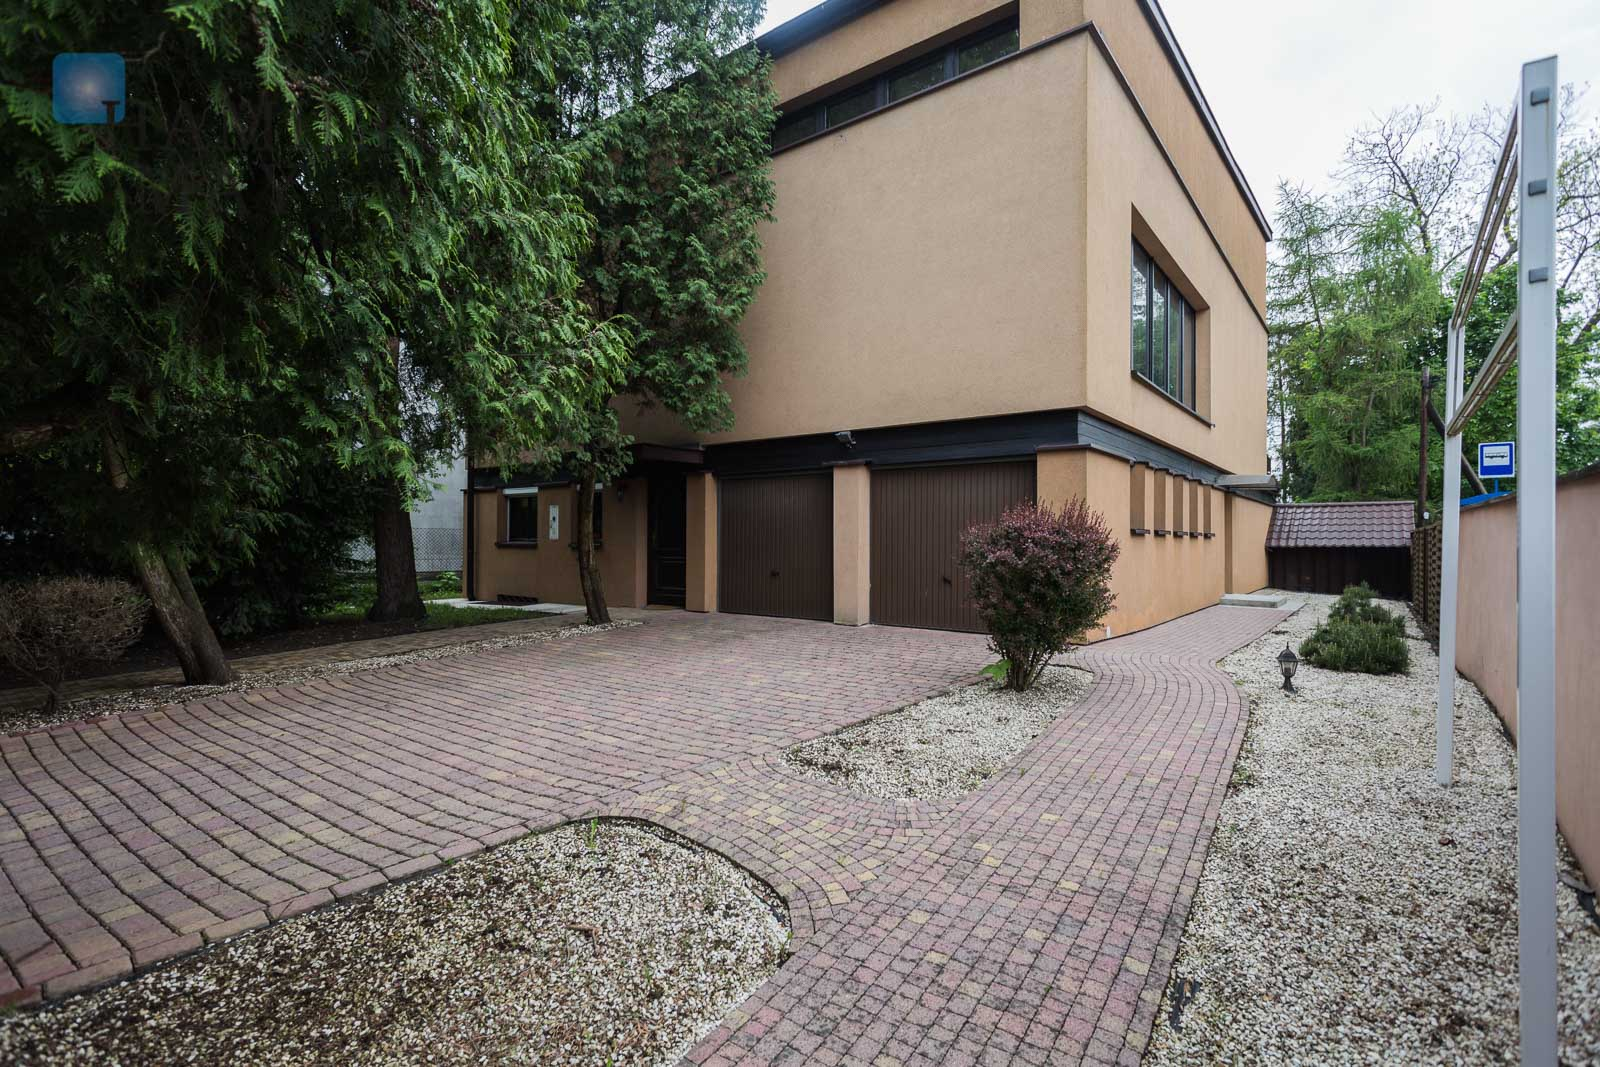 Large, unique house with four bedrooms, located in the greenest part of Wola Justowska Krakow for sale